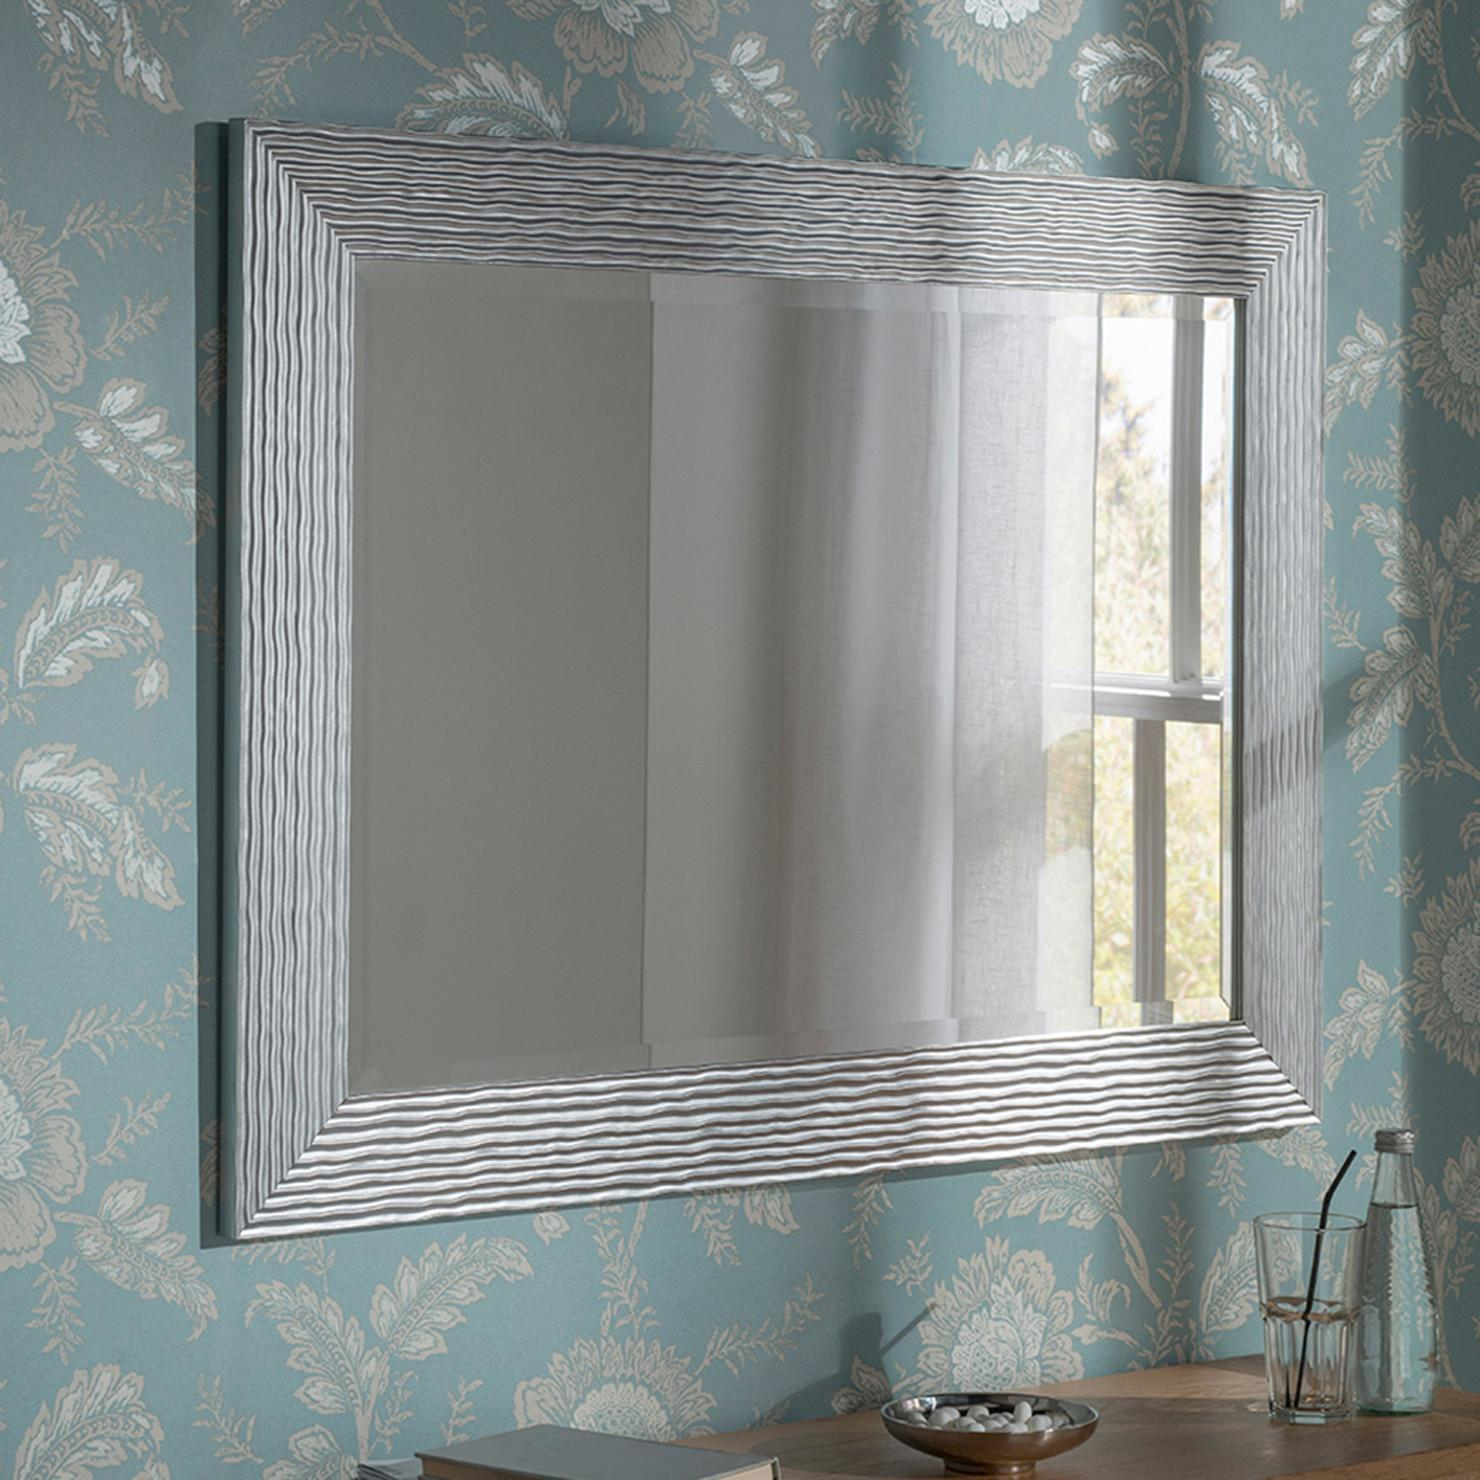 Ripple Wall Mirror Silver Achica